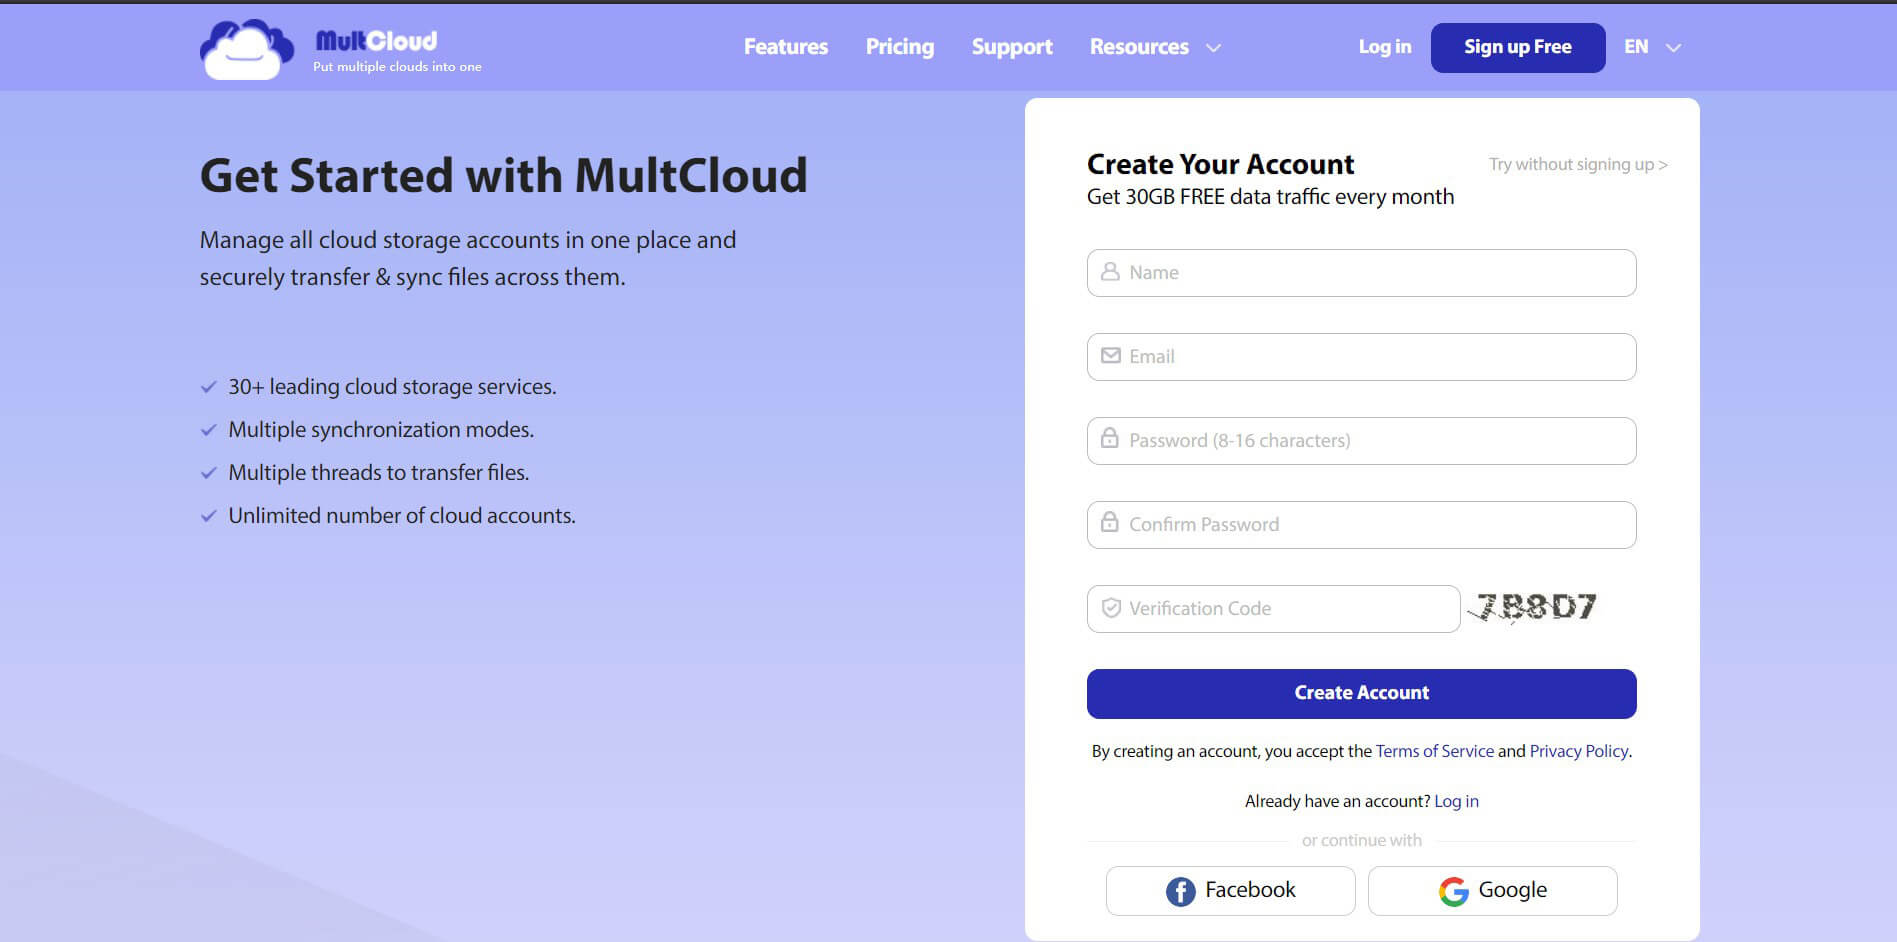 Head on the MultCloud website and create a free account